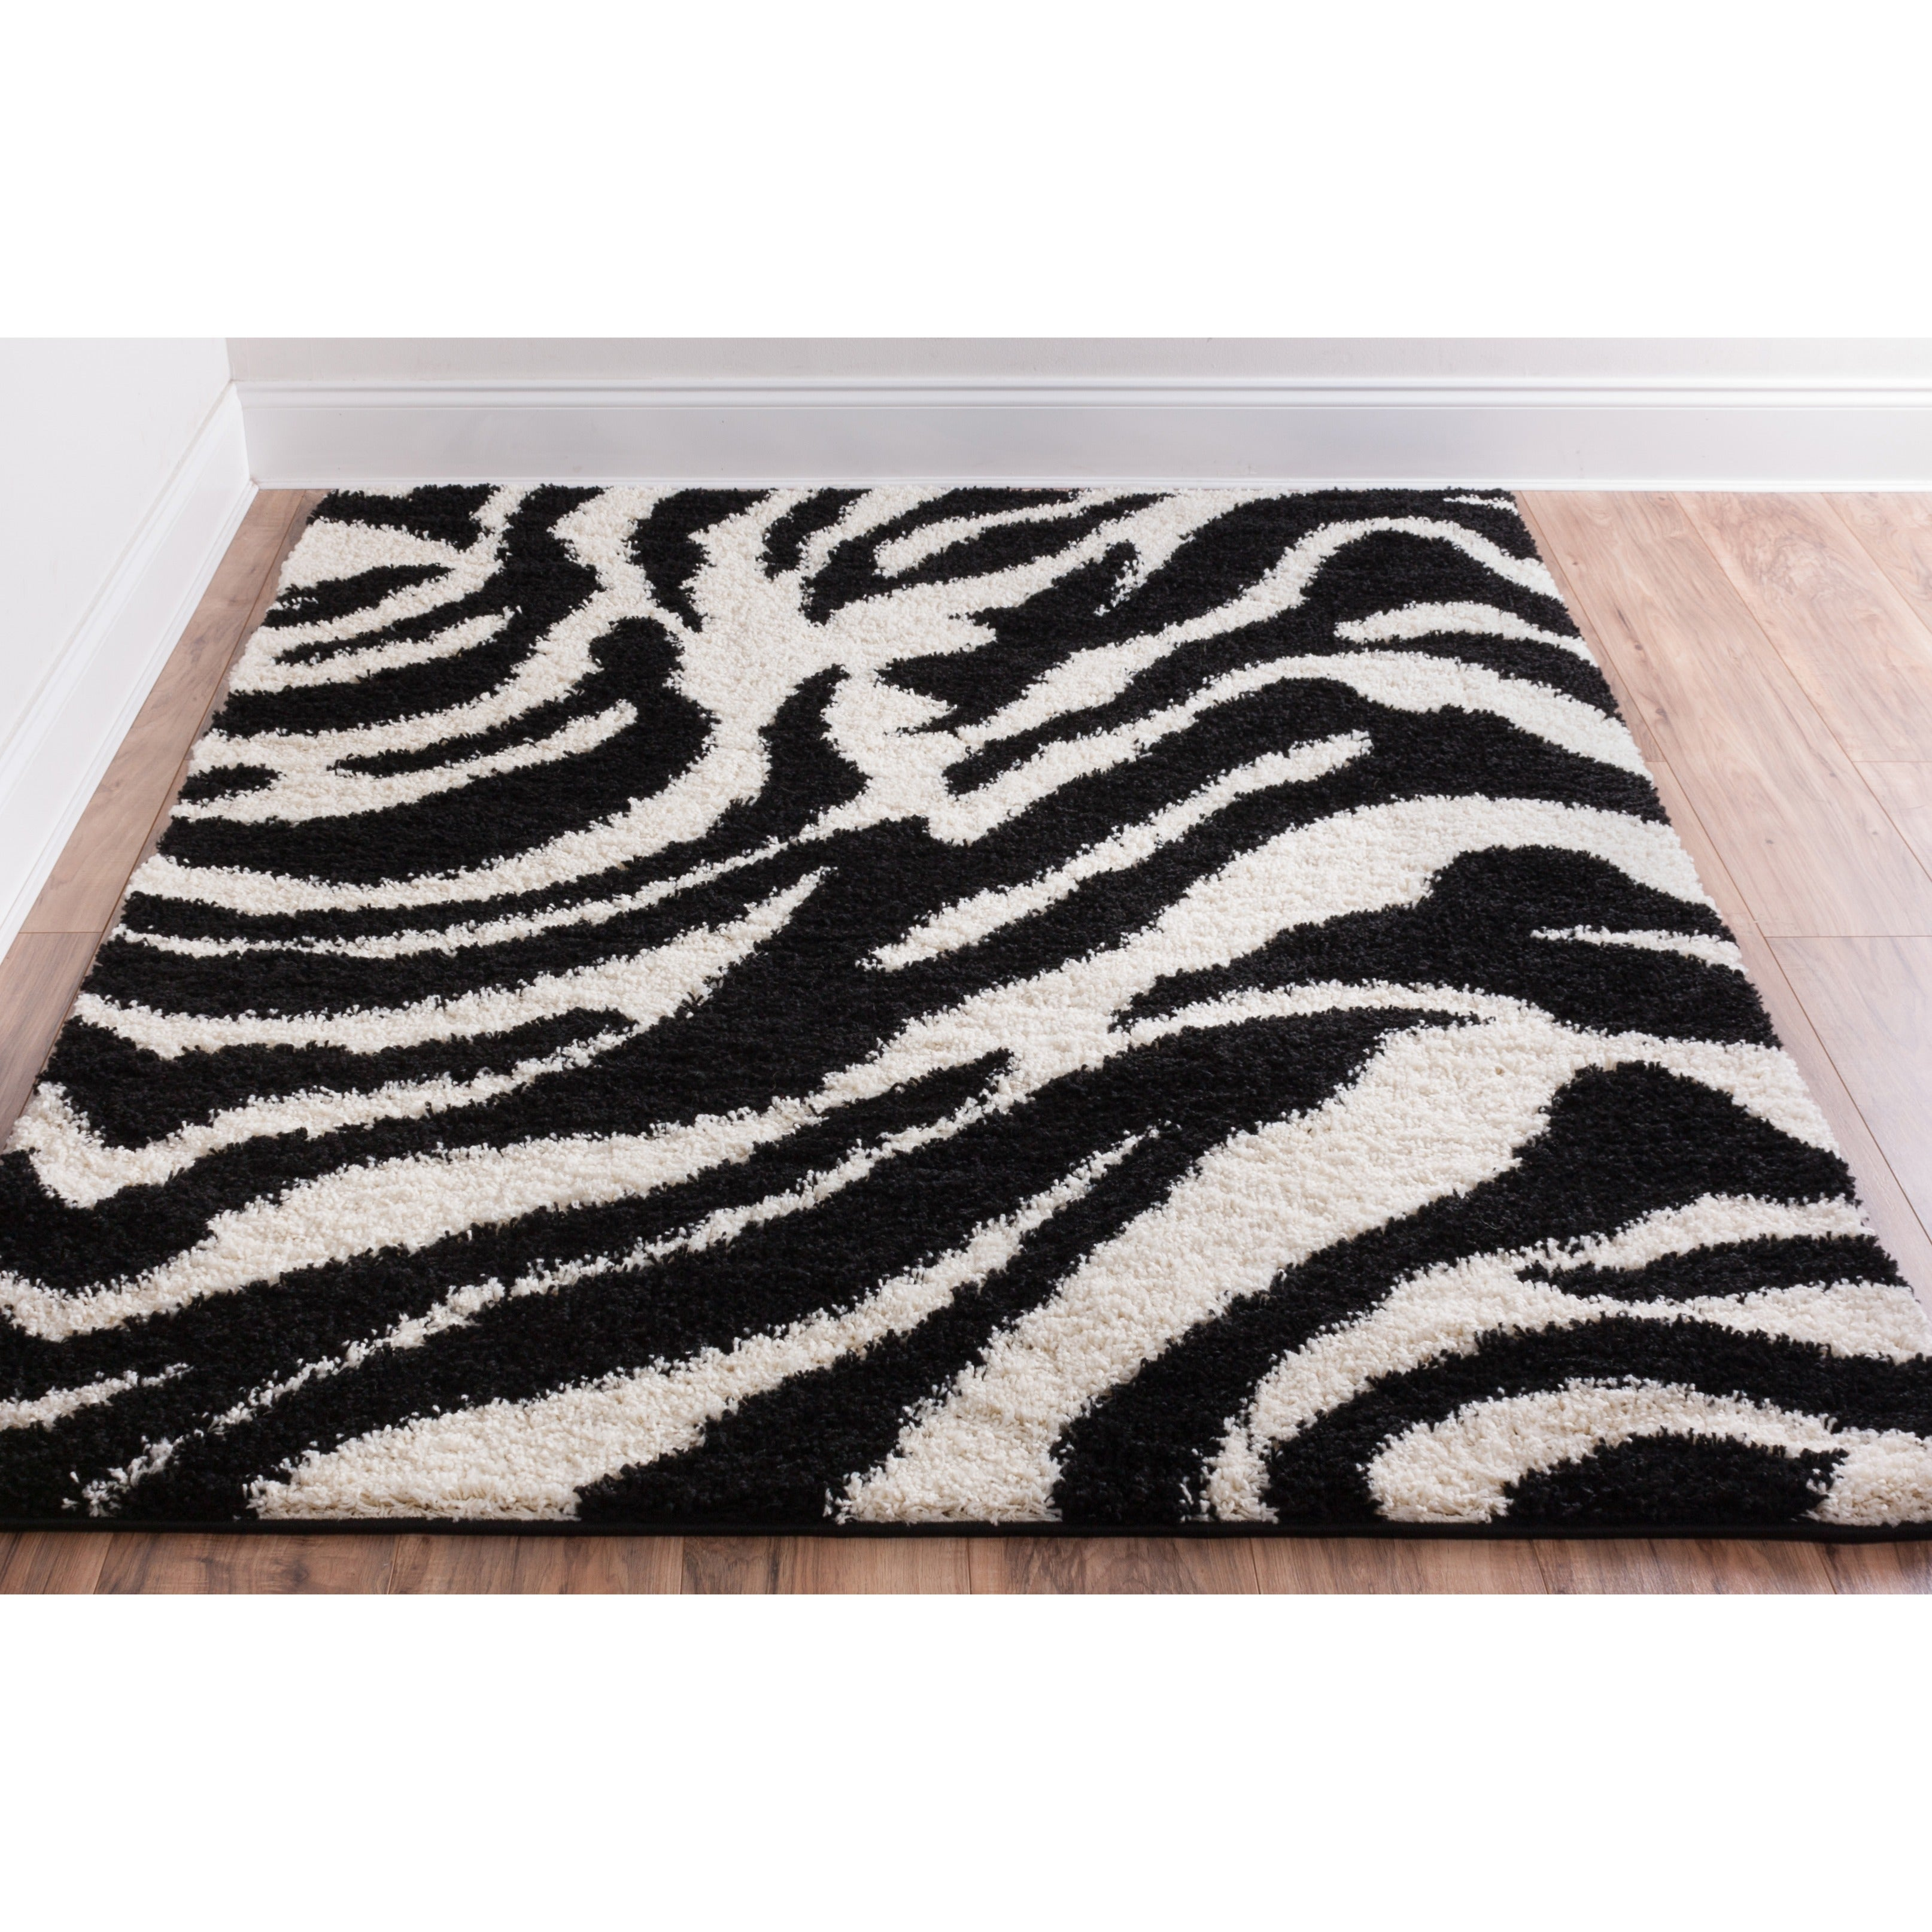 zebra galleries photos of awesome flooring rug improvement brown luxury images rugs home